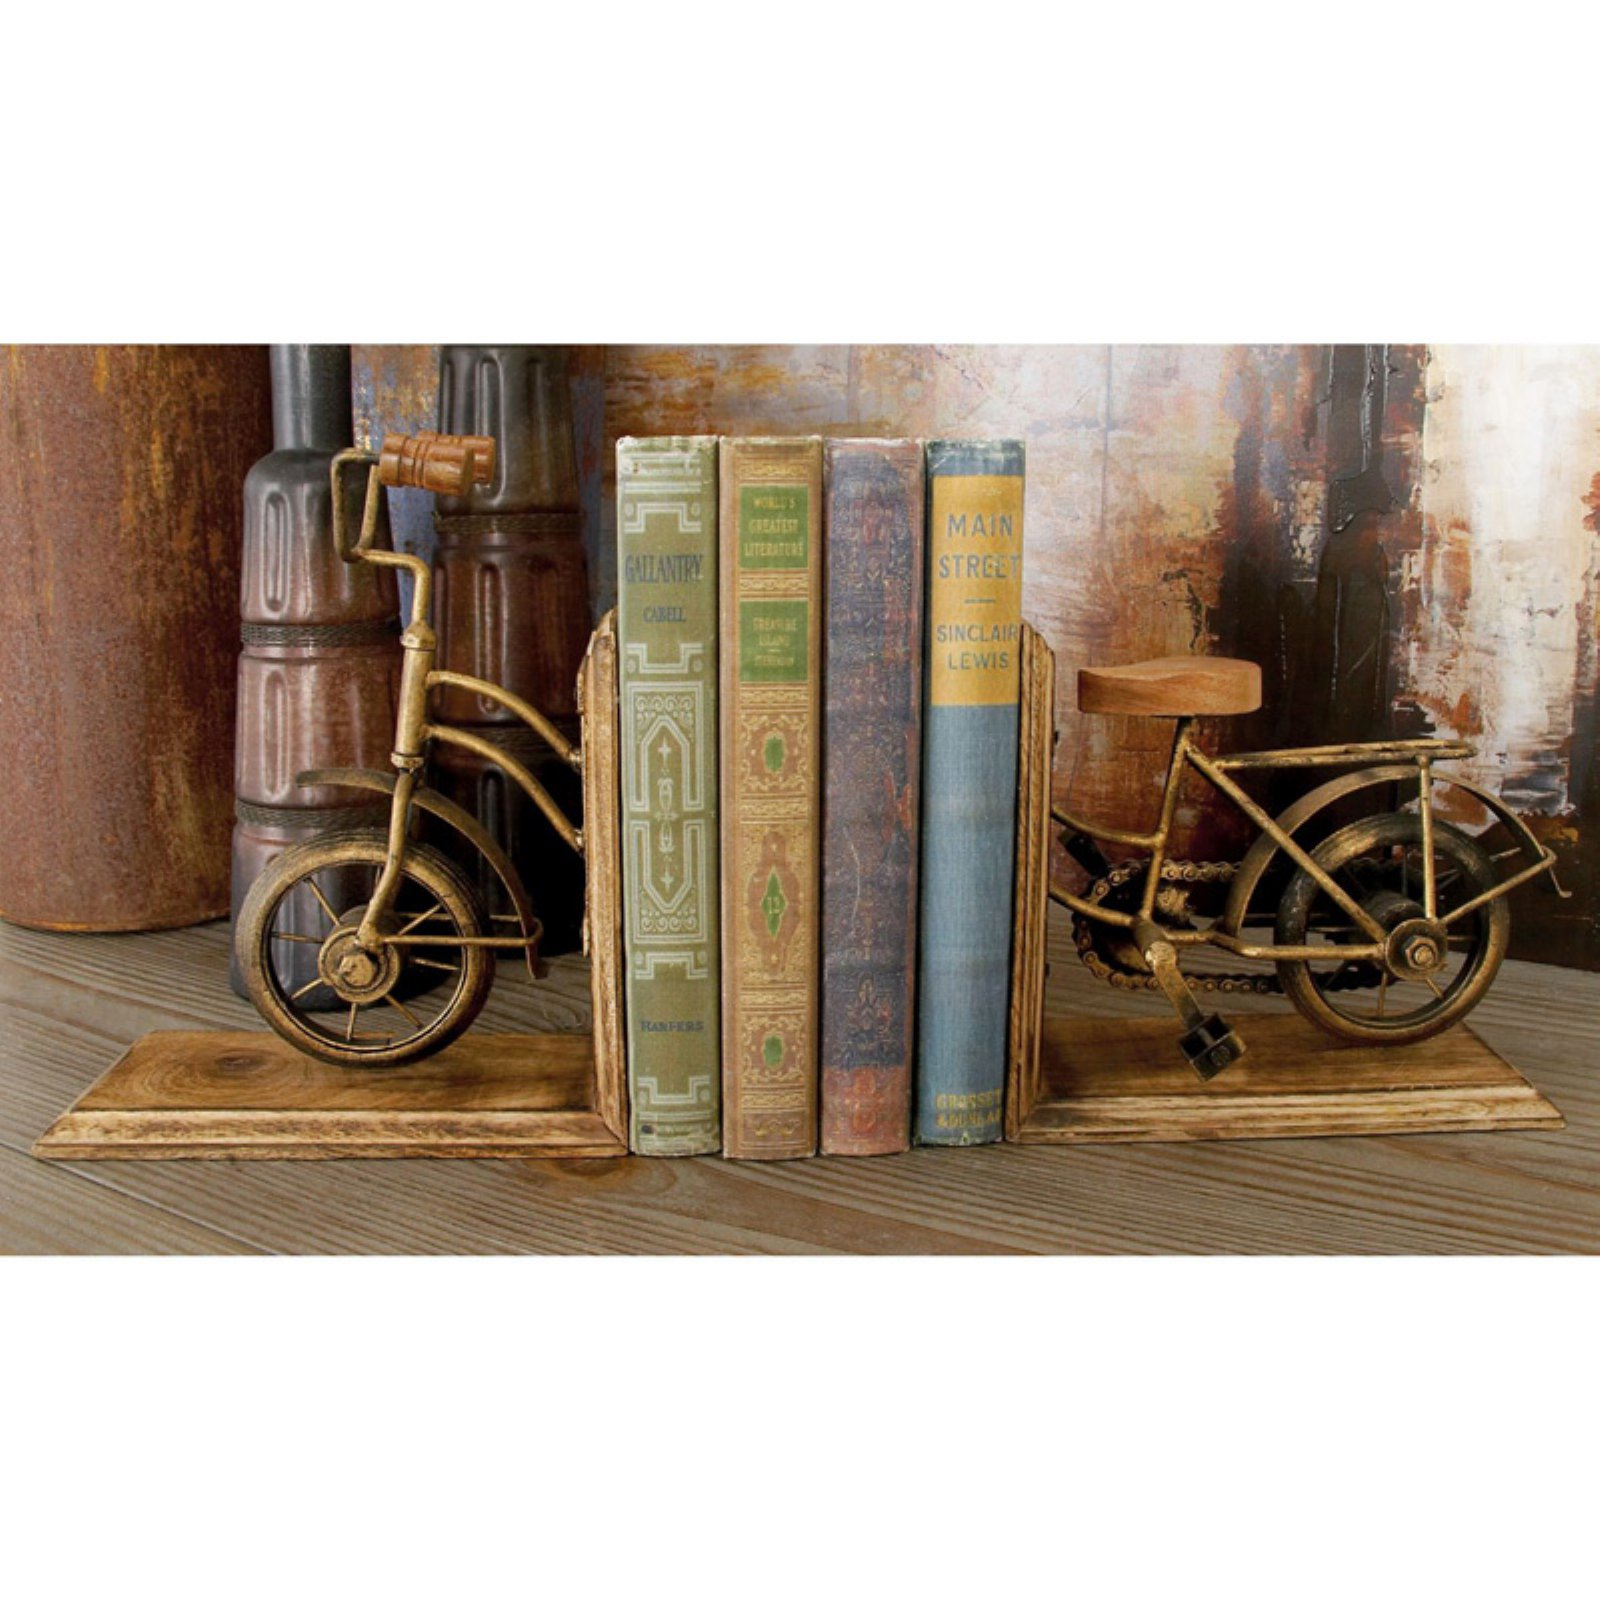 Decmode Metal and Wood Cycle Bookend Pair, Multi Color by Benzara